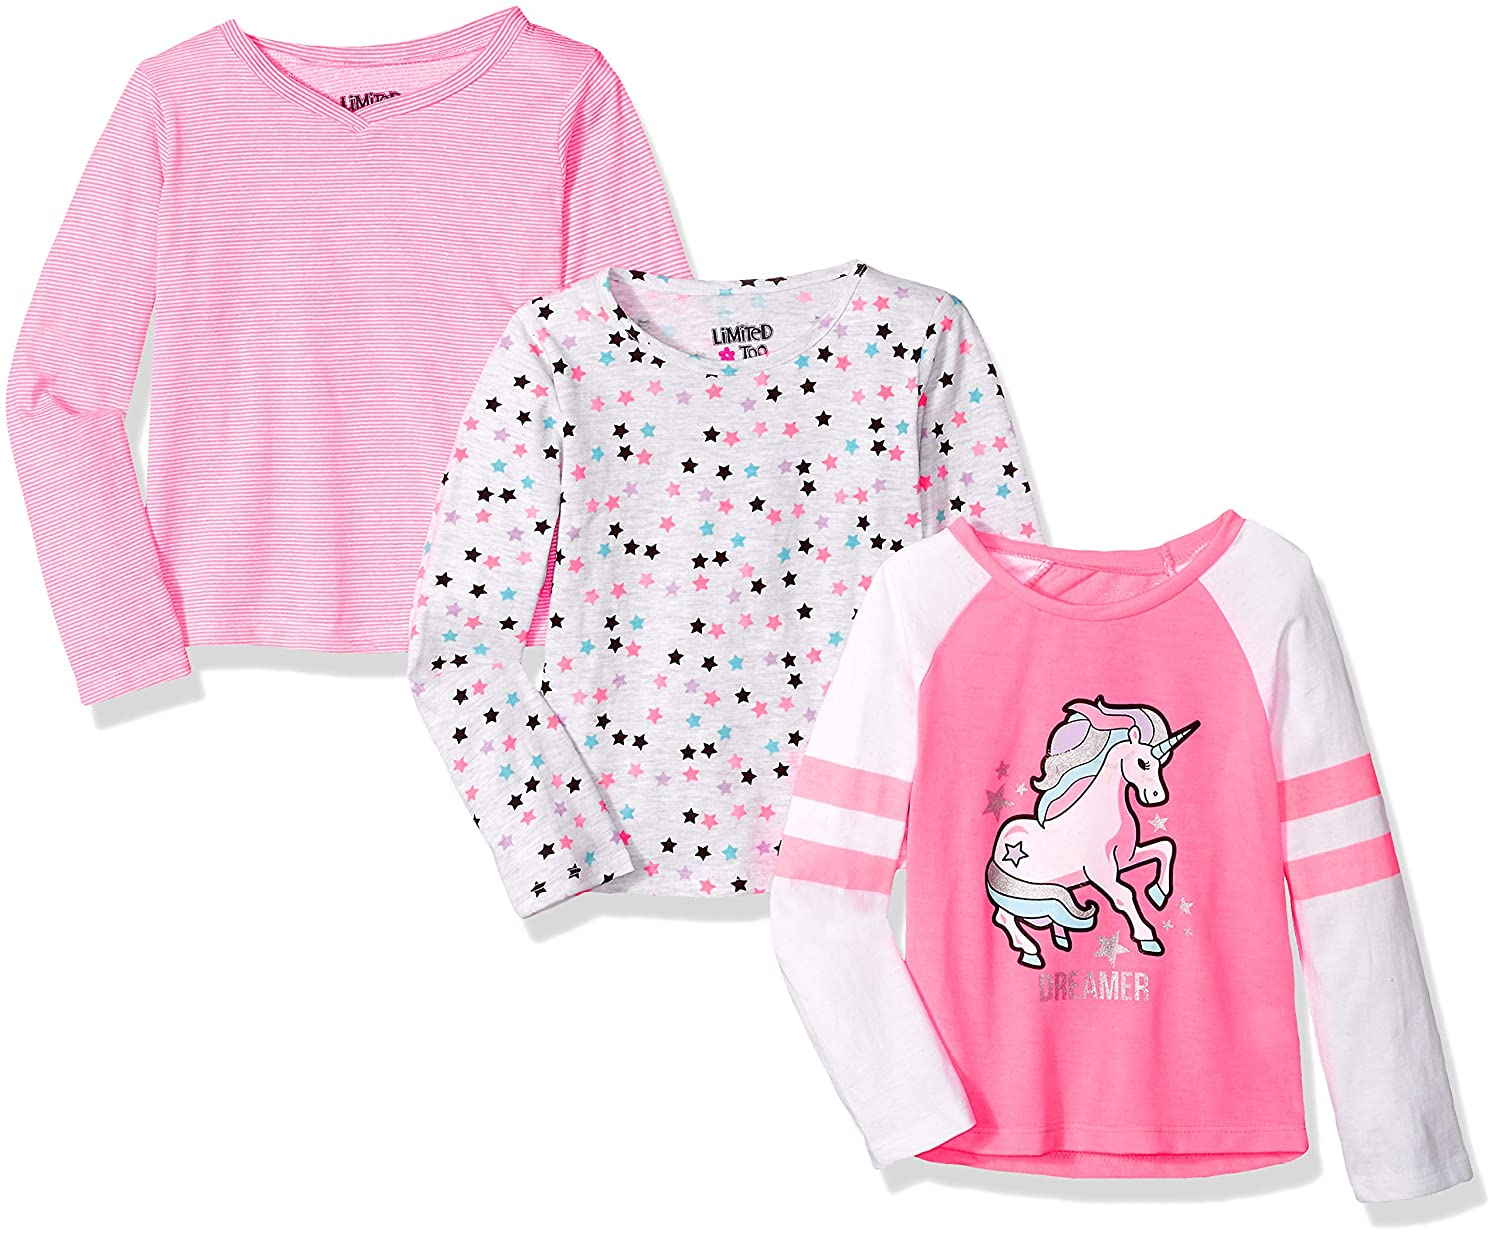 Limited Too Girls' 3 Pack Long Sleeve T-Shirt Set